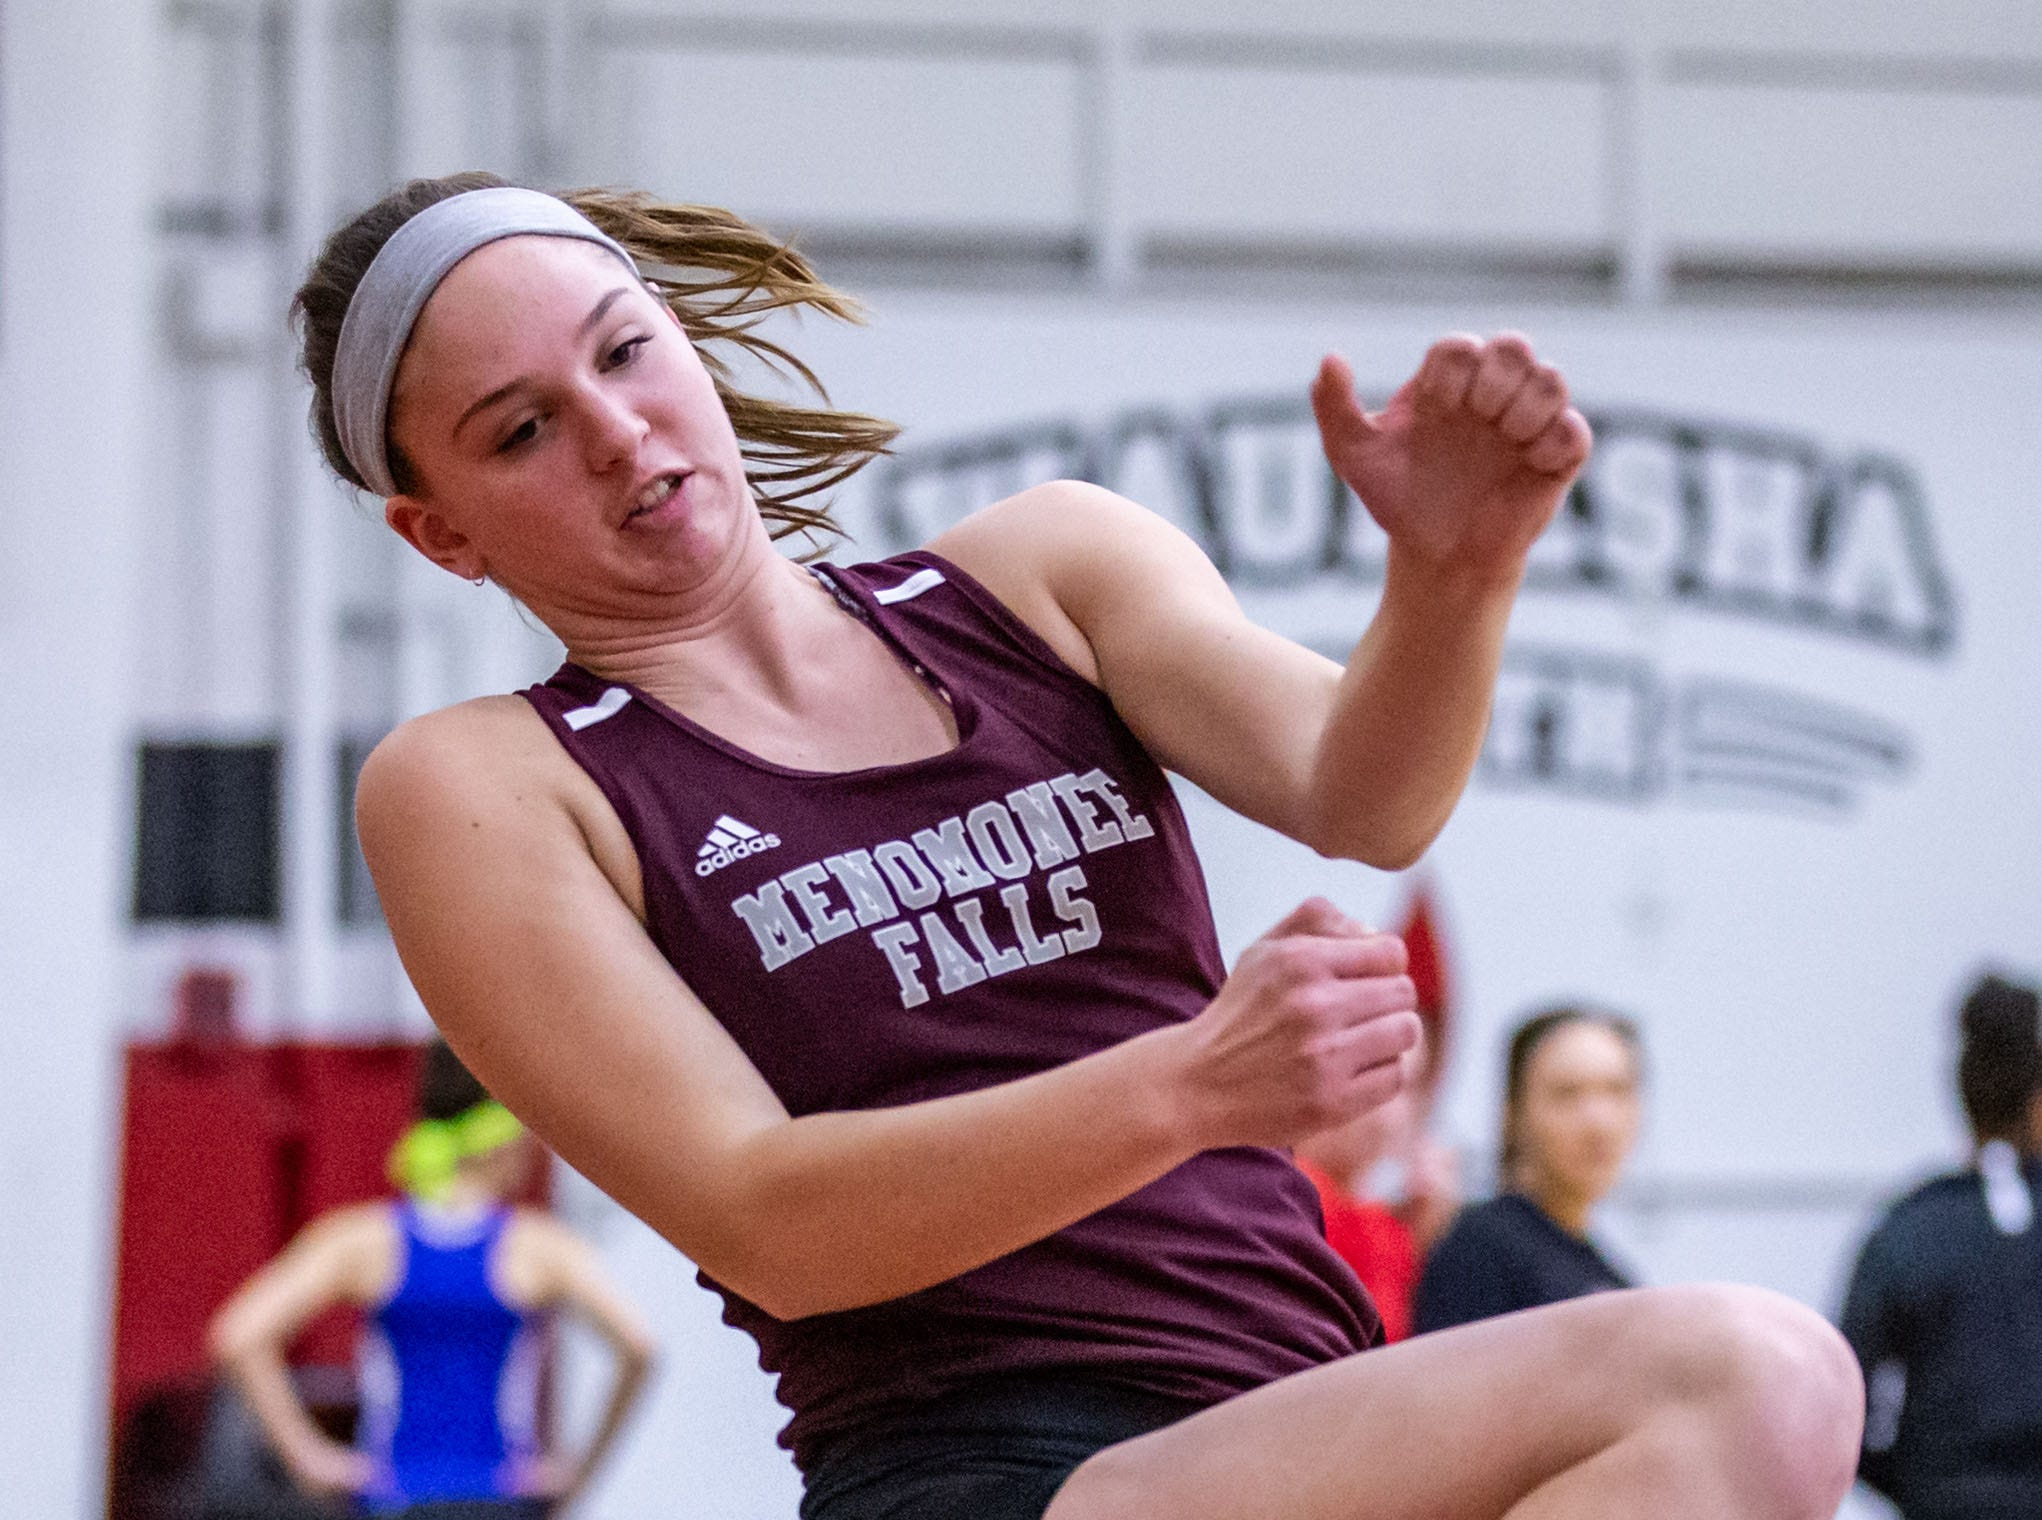 Menomonee Falls senior Haley Matthiessen competes in the high jump at the Peter Rempe Cardinal Relays hosted by Waukesha South on Thursday, March 21, 2019.